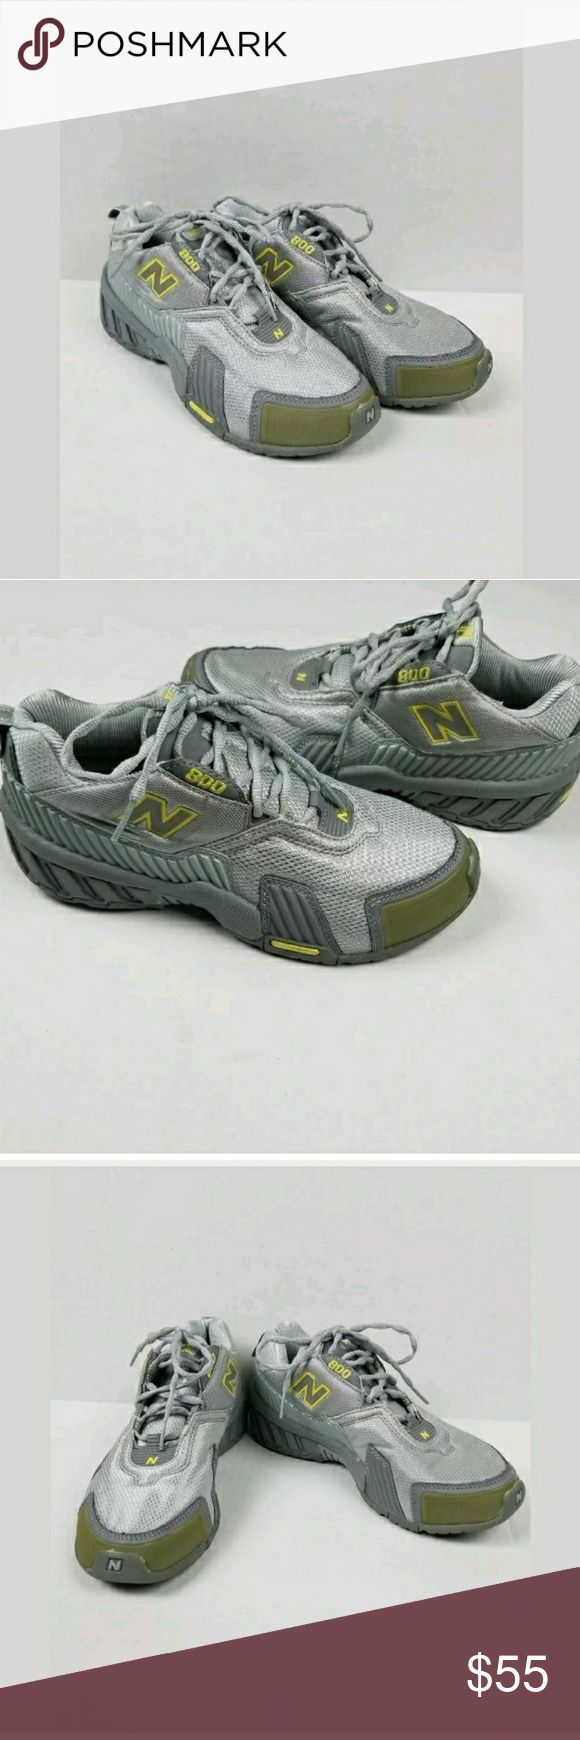 Women New Balance Abzorb WX800GY Gray/Yellow sz 8 Women New Balance Abzorb WX800GY Gray/Yellow Light Weight Cross Trainer sz 8  Stains noted in photos. New Balance Shoes Sneakers